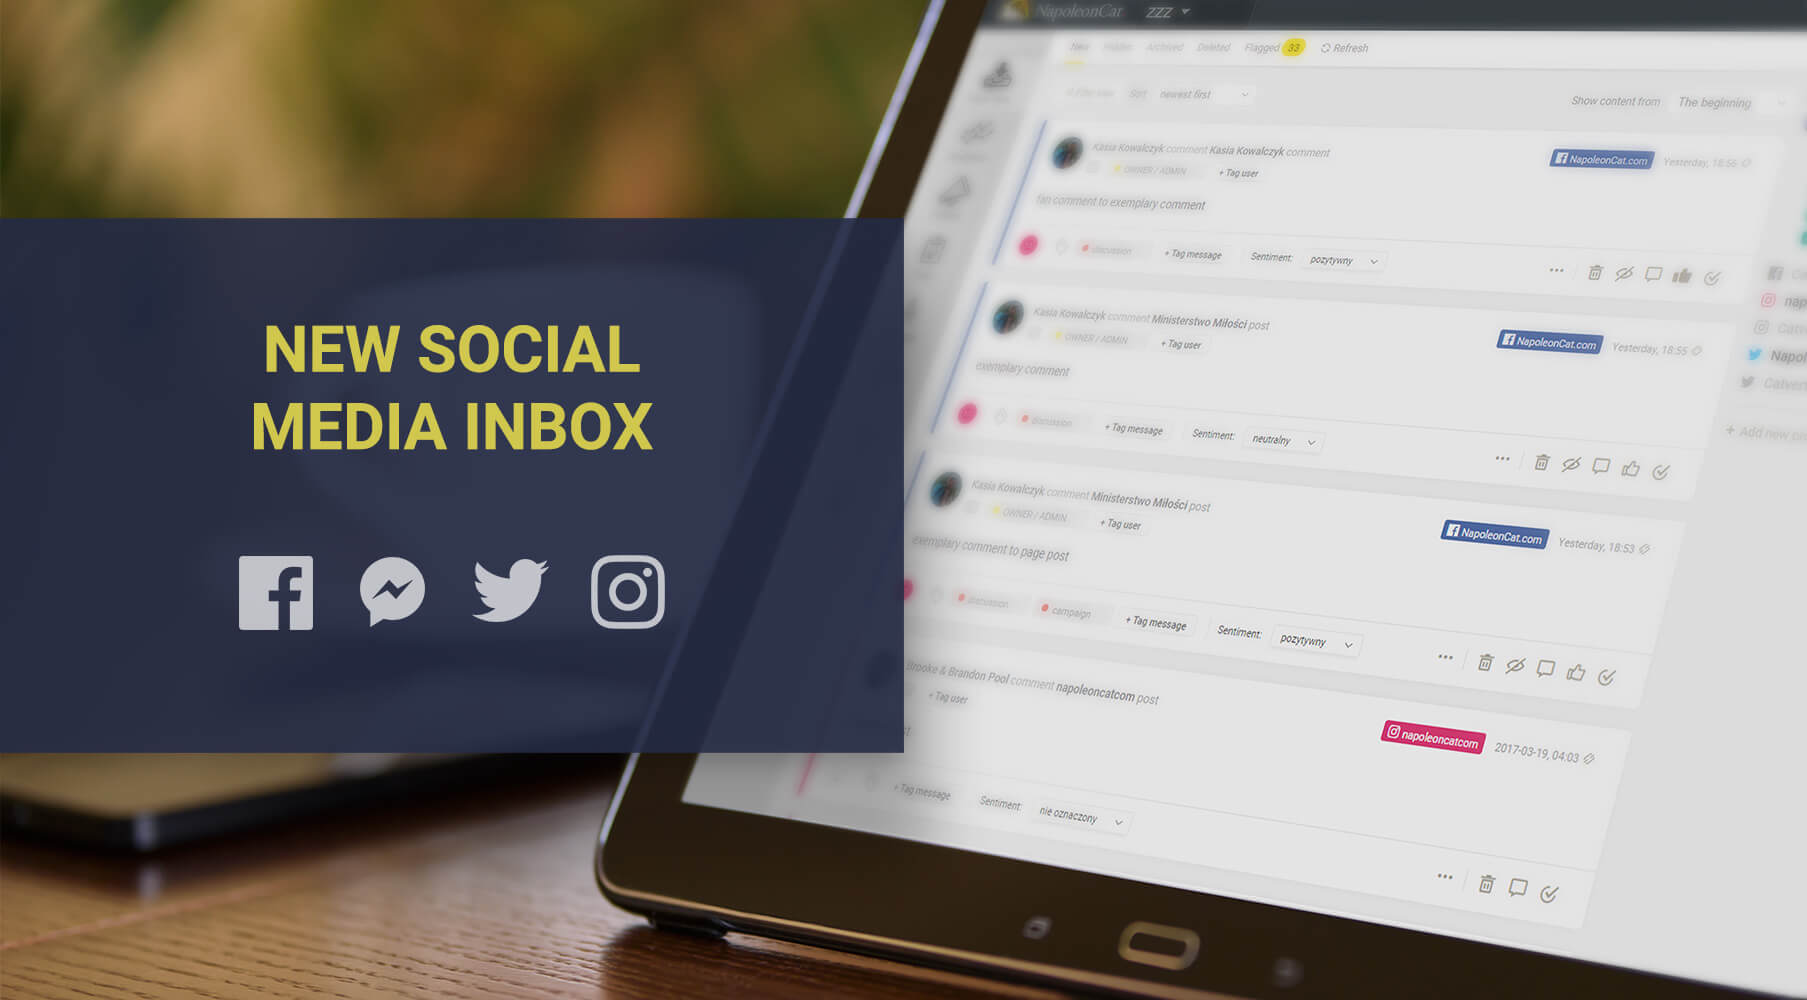 new-social-media-inbox-in-NapoleonCat